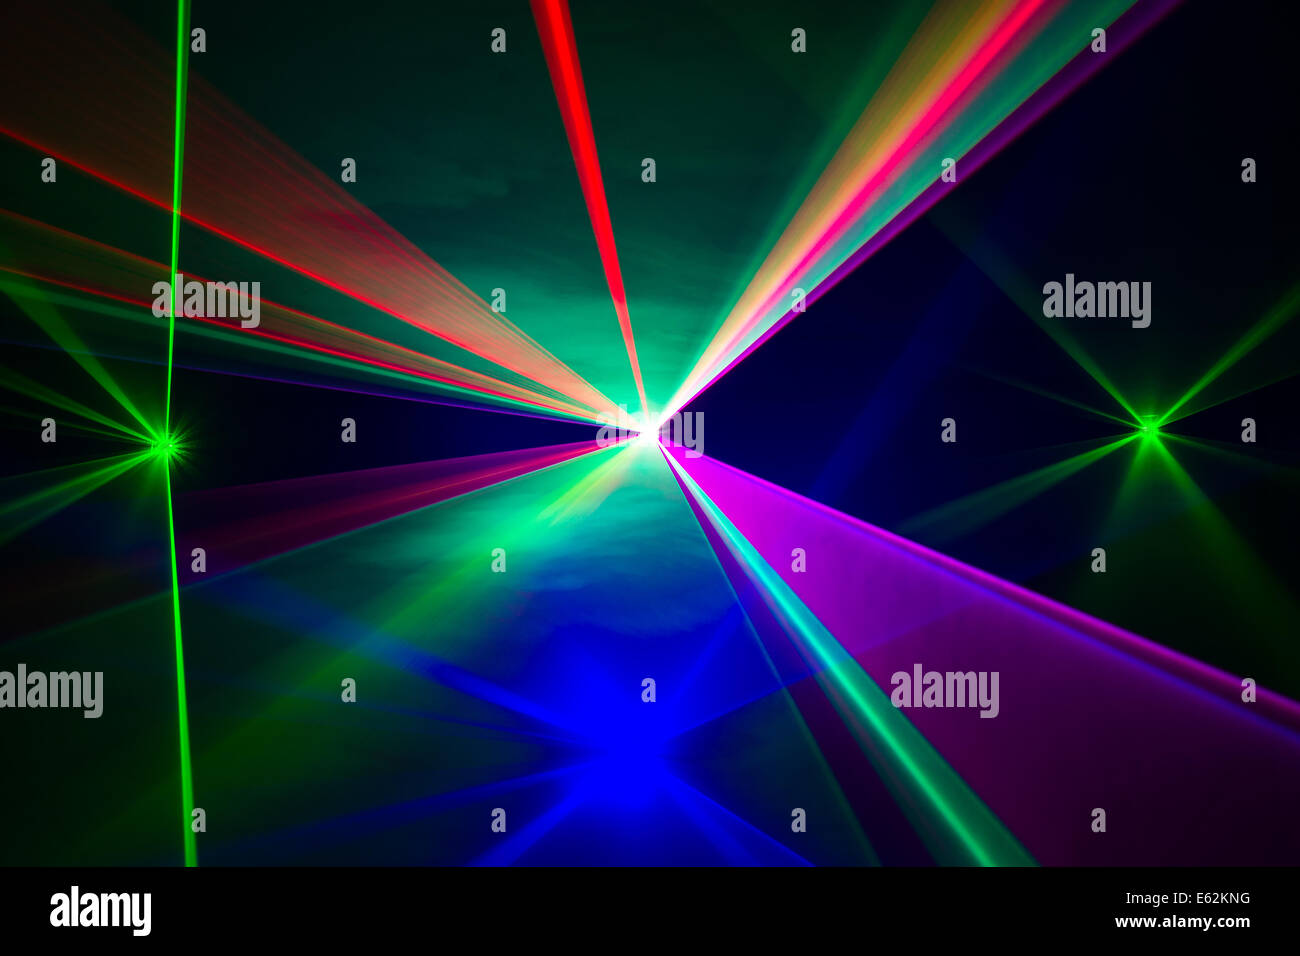 Full Spectrum of laser beams in all colors - Stock Image